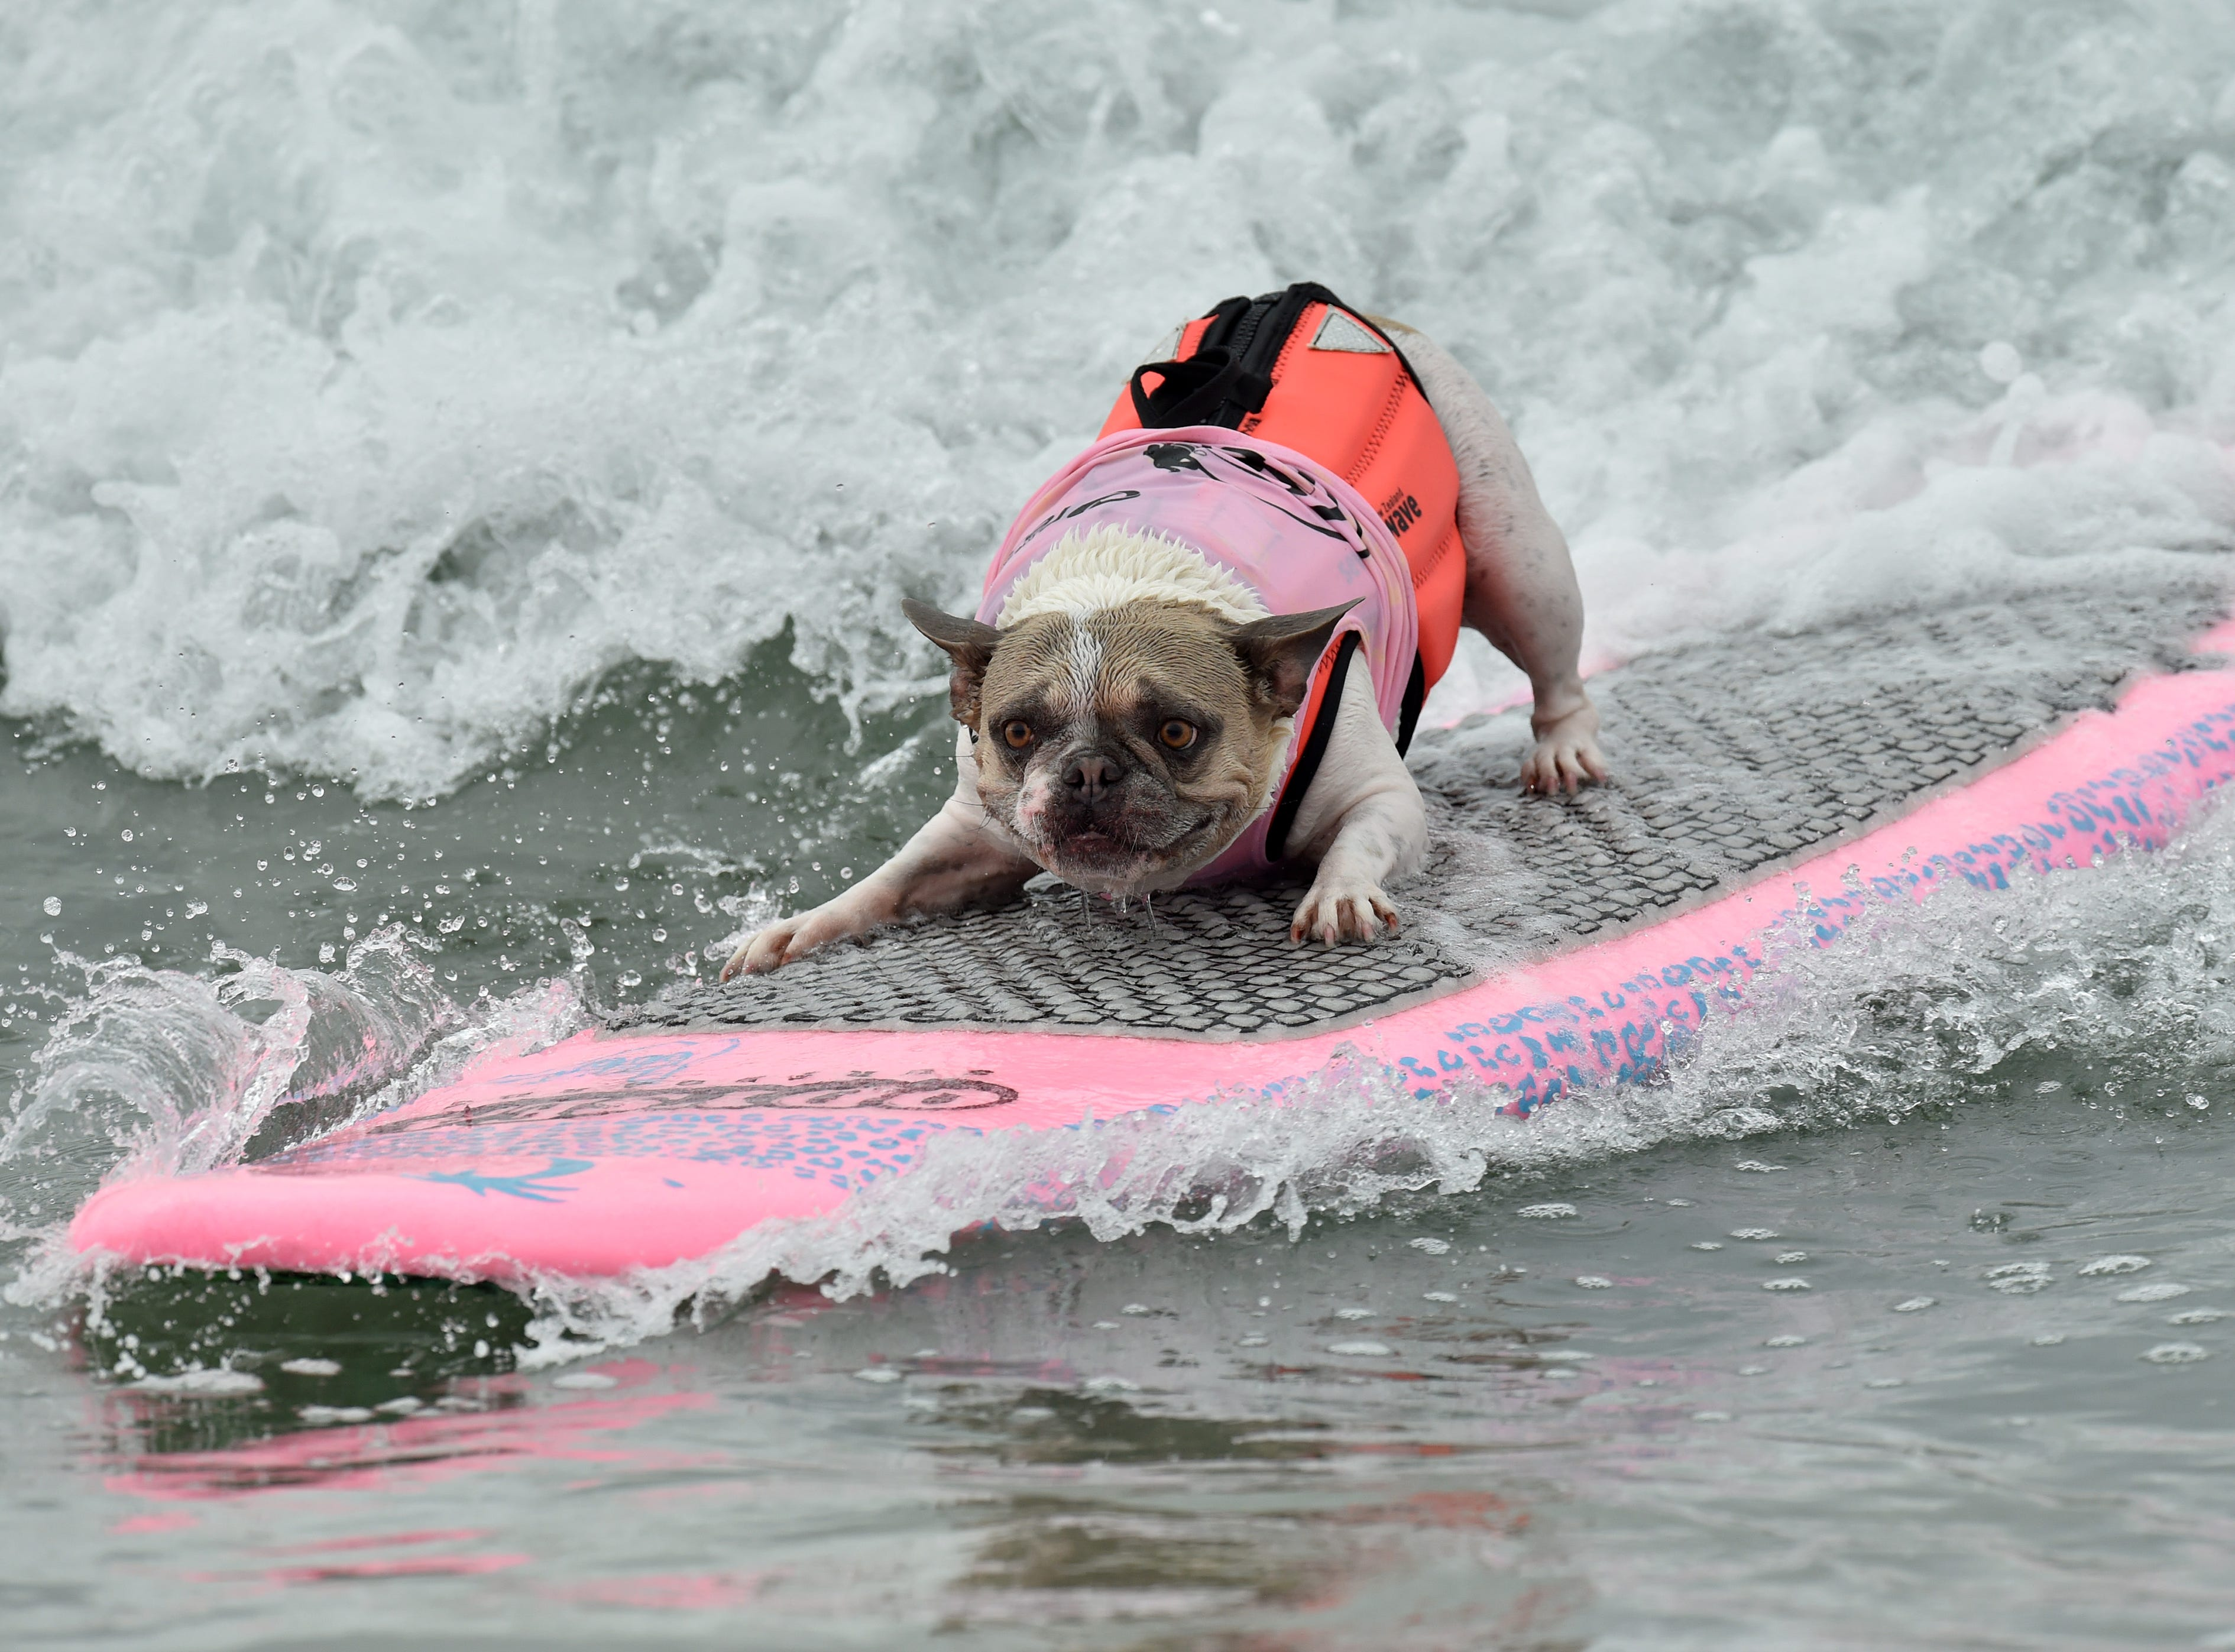 A dog hangs on as they competes in the Surf Dog competition.